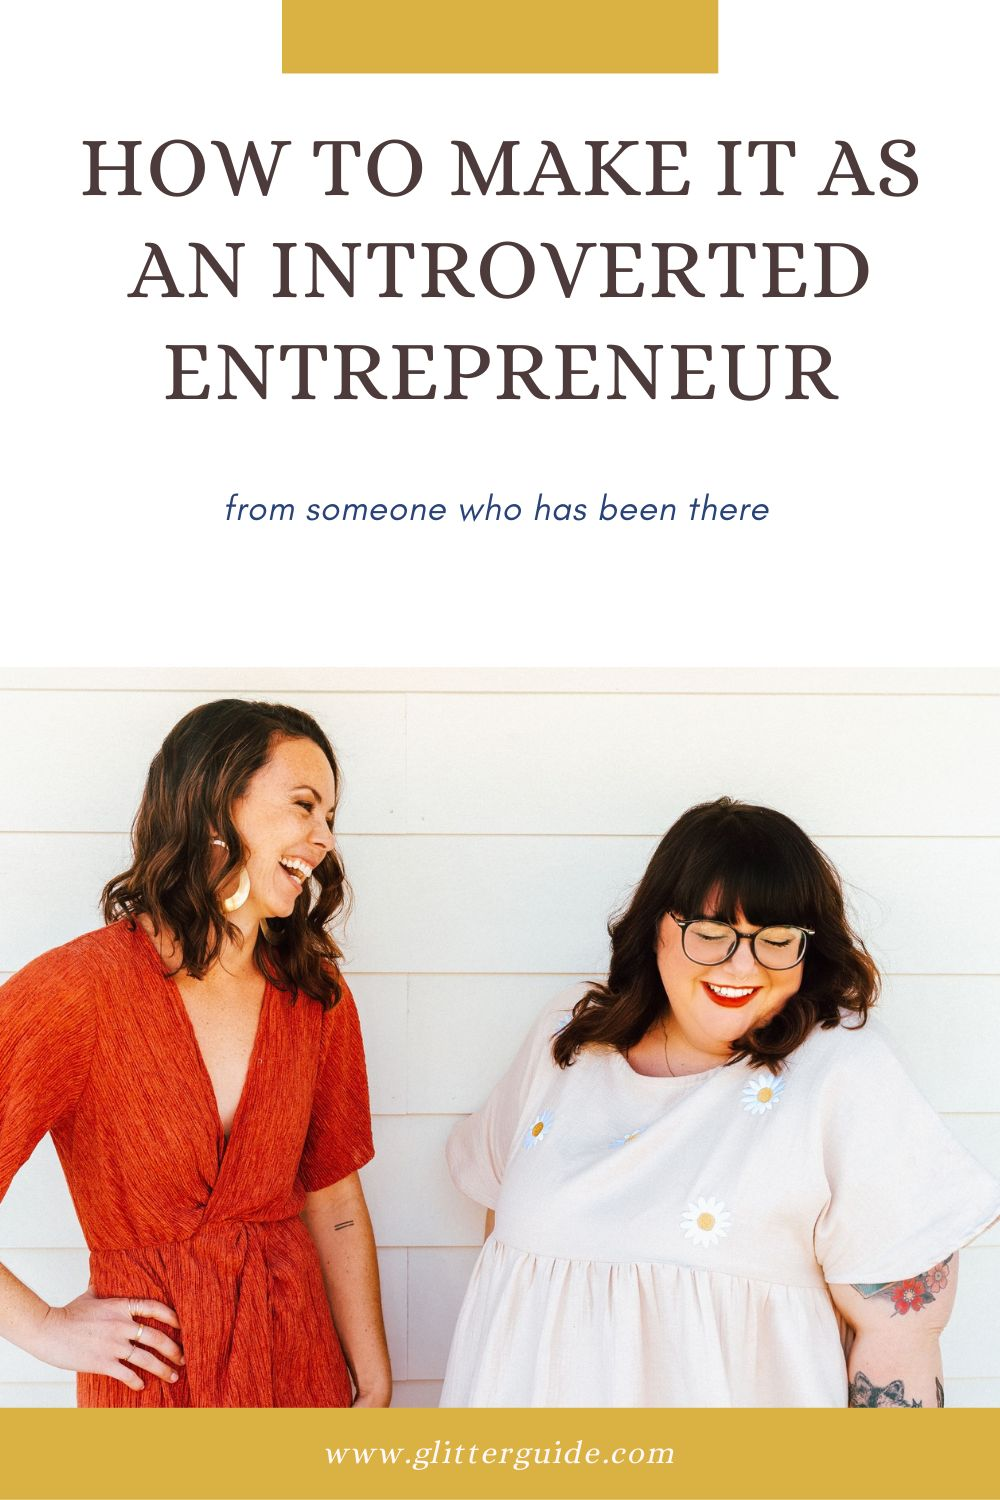 How To Make It As An Introverted Entrepreneur